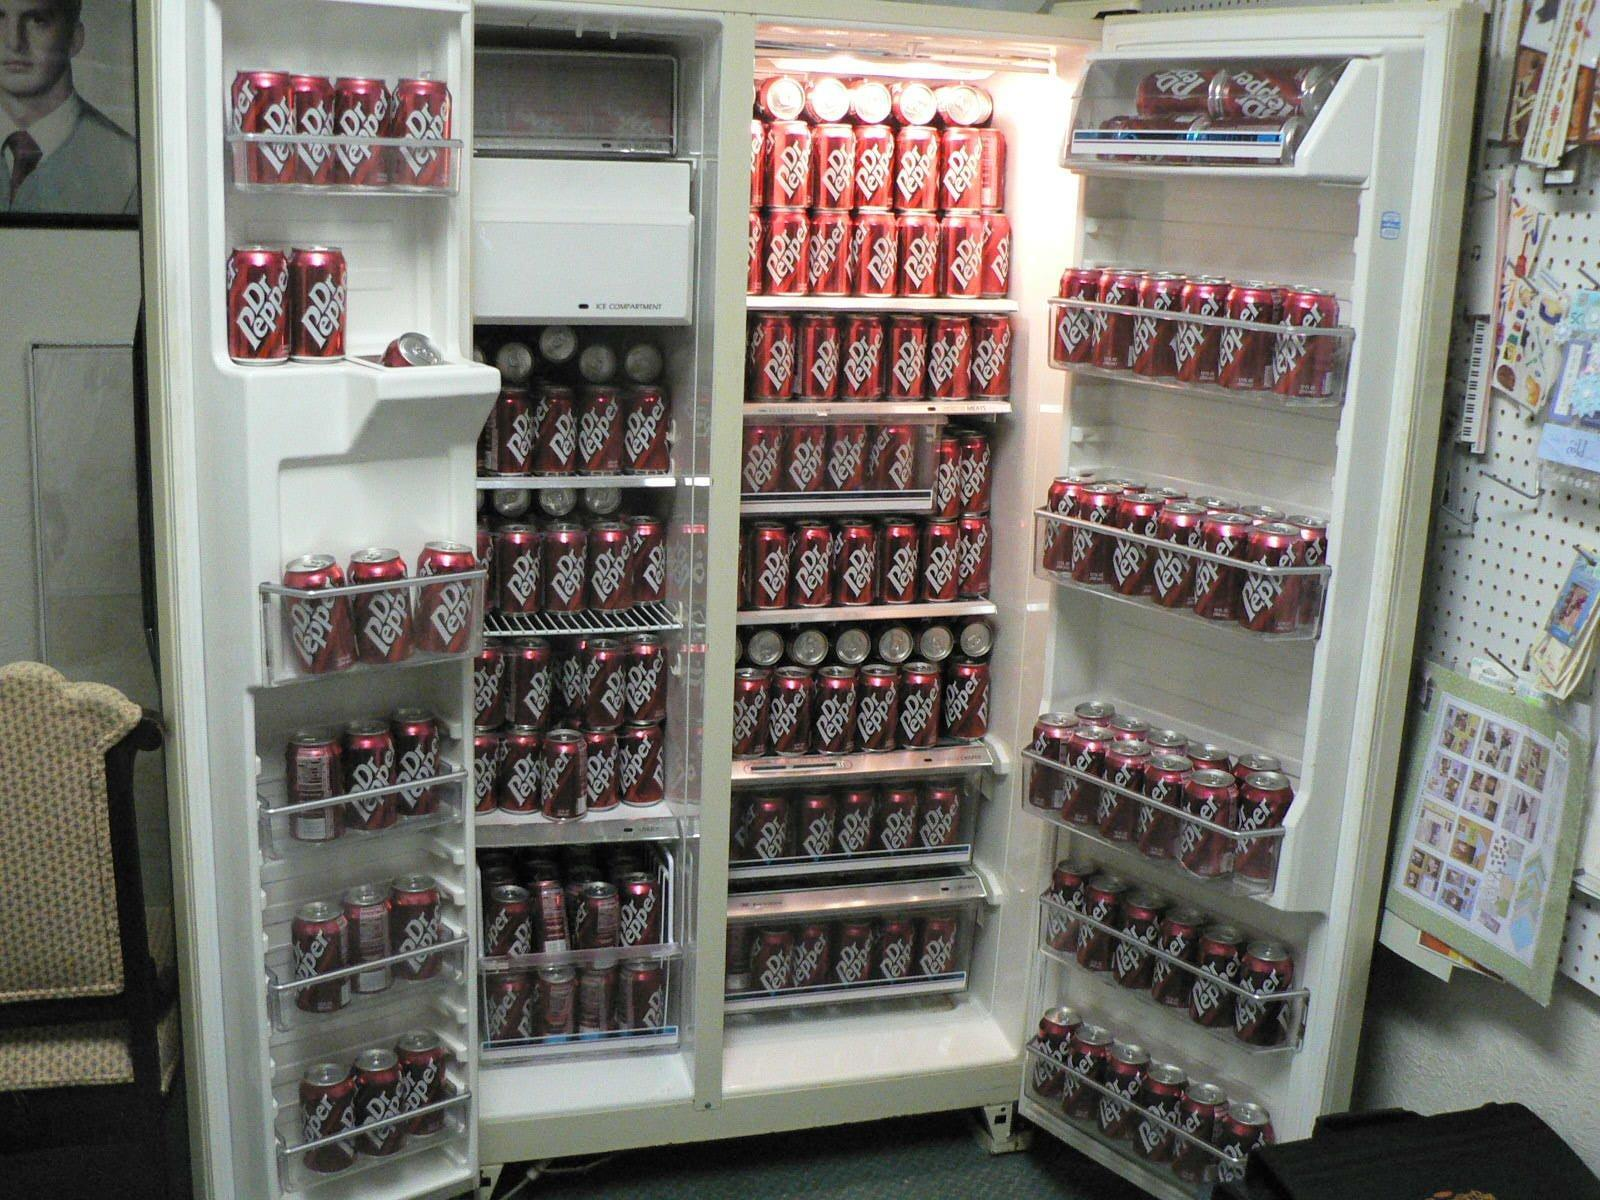 What do you want your fridge filled with?